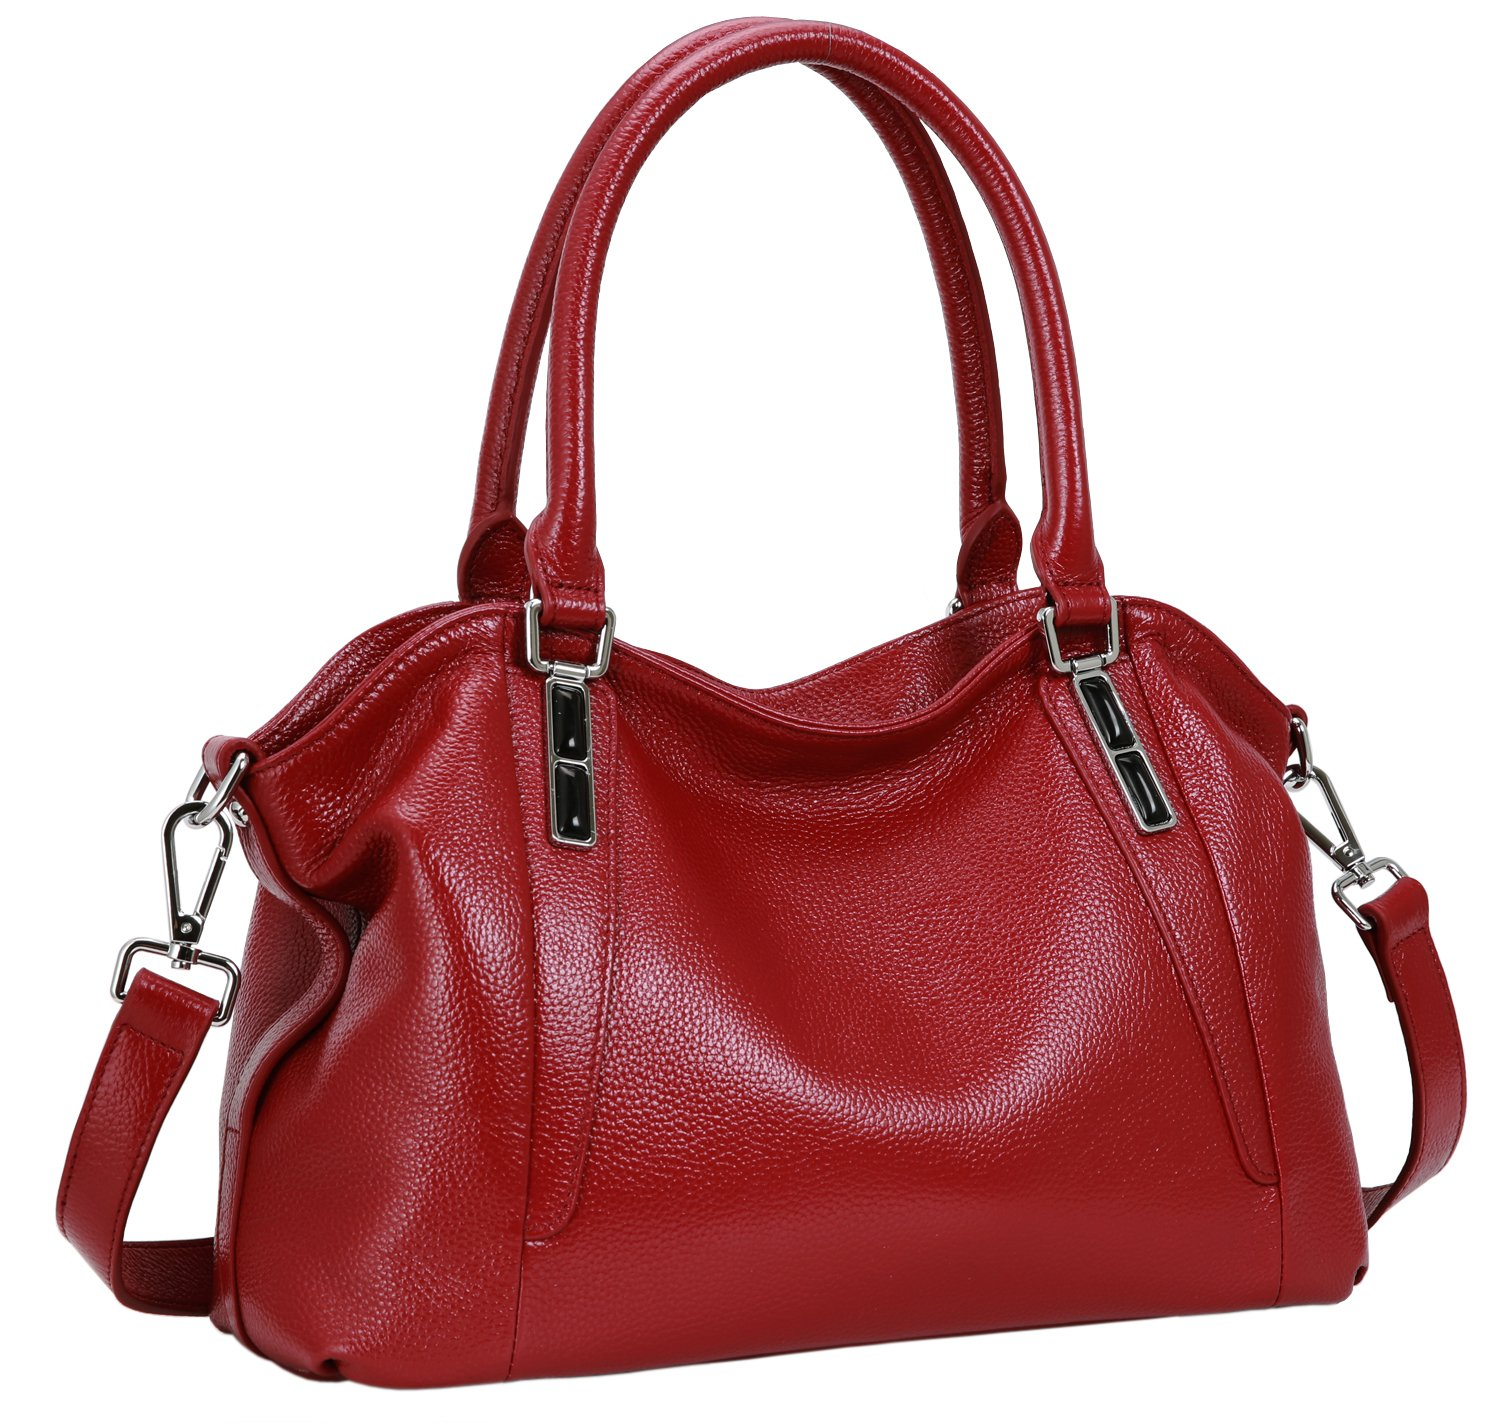 Iswee Leather Shoulder Bag Tote Top Hanldle Handbag Satchel Cross Body Purses for Women on Clearance (Wine)